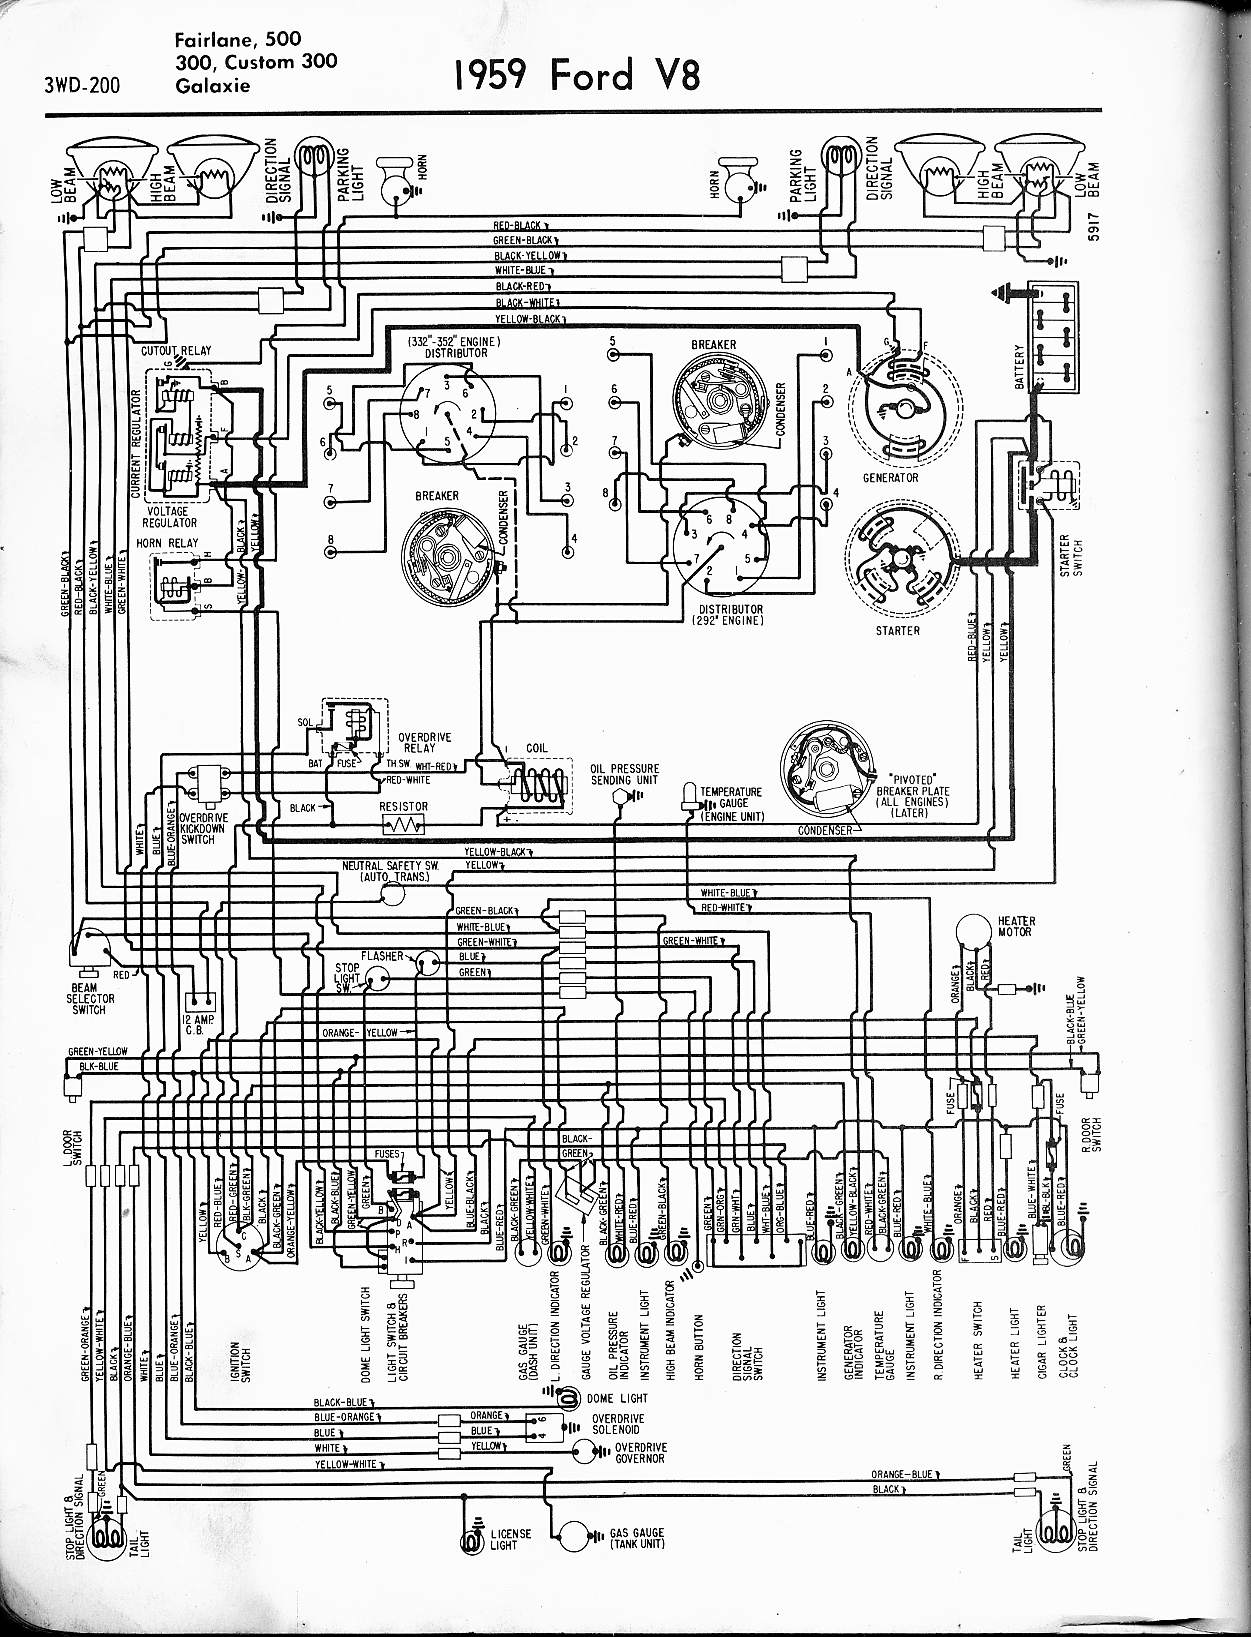 Wrg 7963 1934 Ford Wiring Diagram Chevy Wiper Motor Trucks Cars 65 1956 Simple 2011 Chevrolet Cadillac